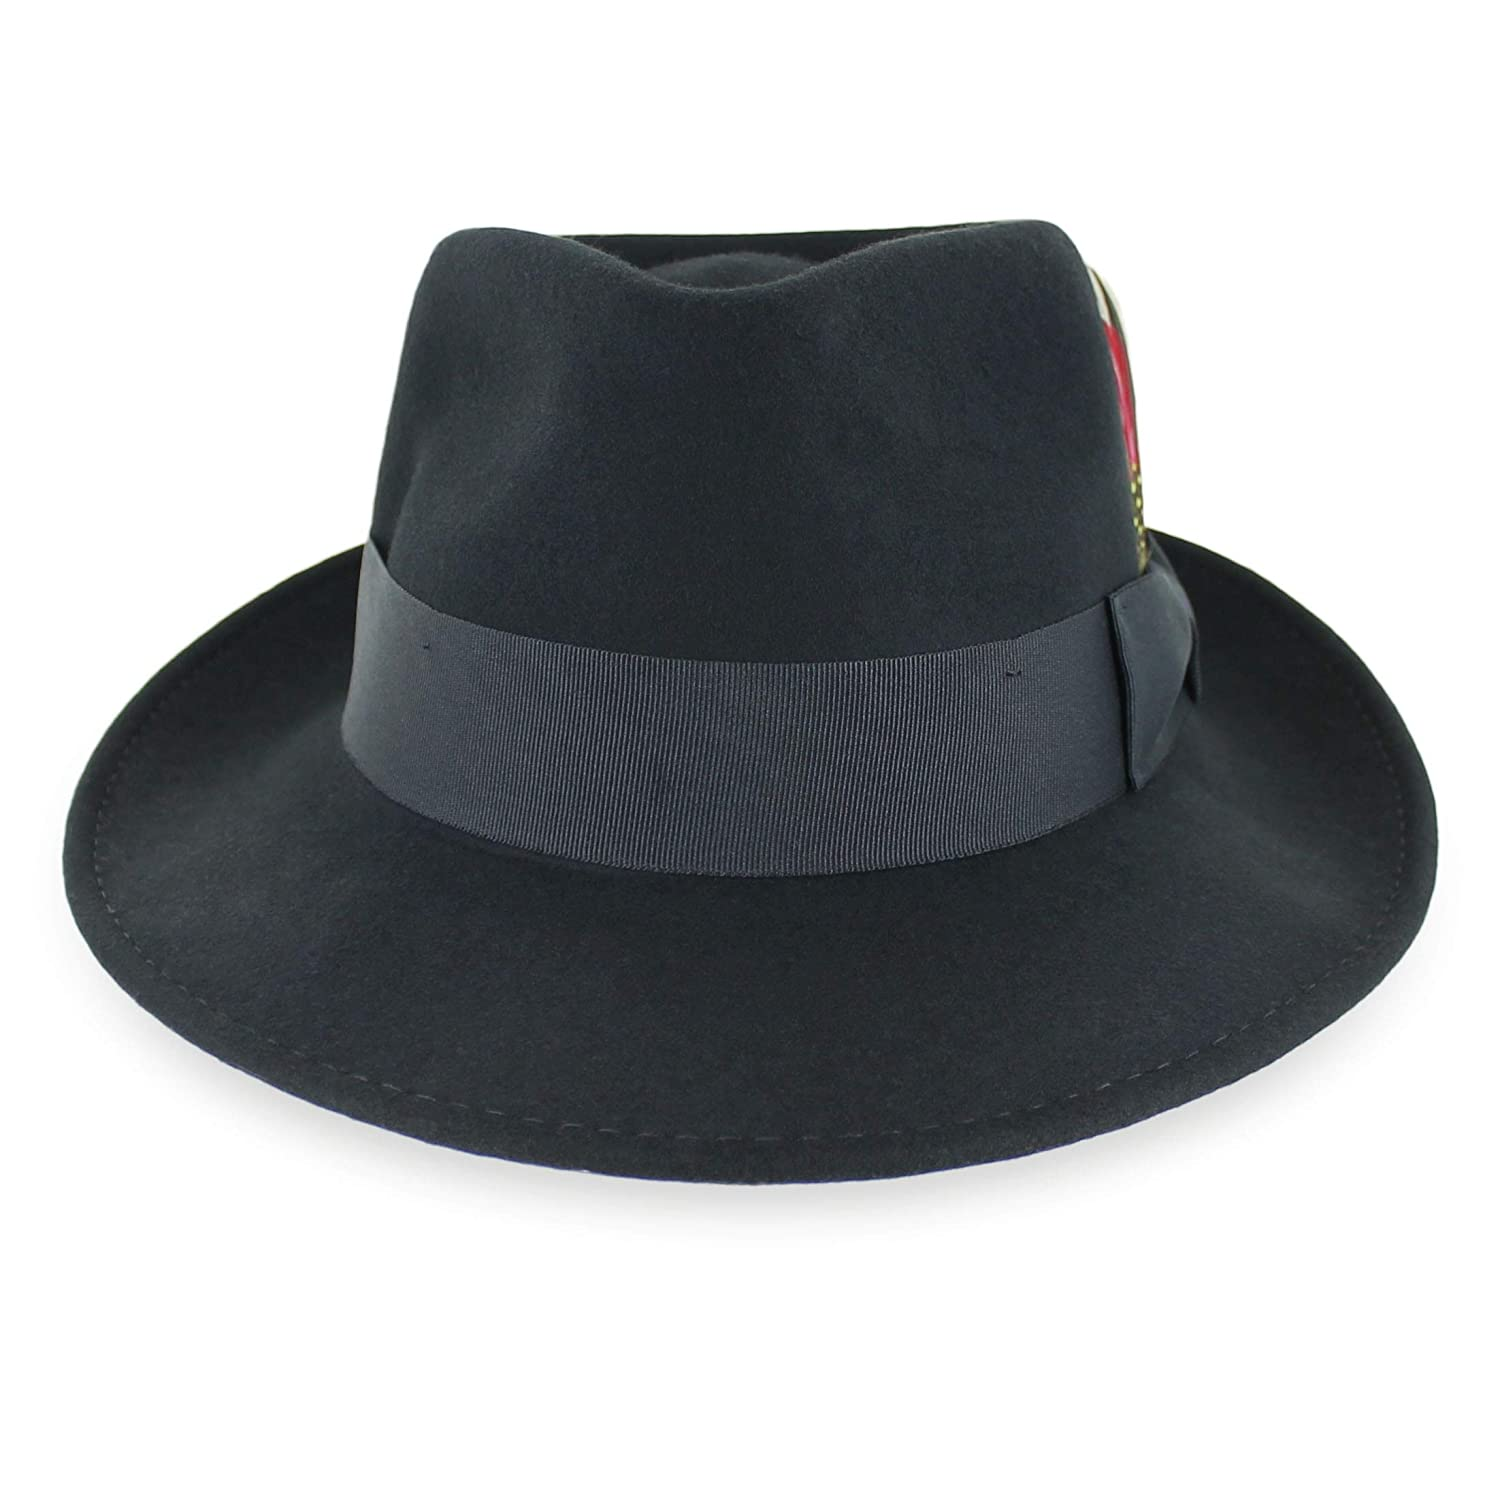 Belfry Gangster 100% Wool Stain Resistant Crushable Dress Fedora in Black  Grey Navy Brown Pecan at Amazon Men s Clothing store  23f2f878e34